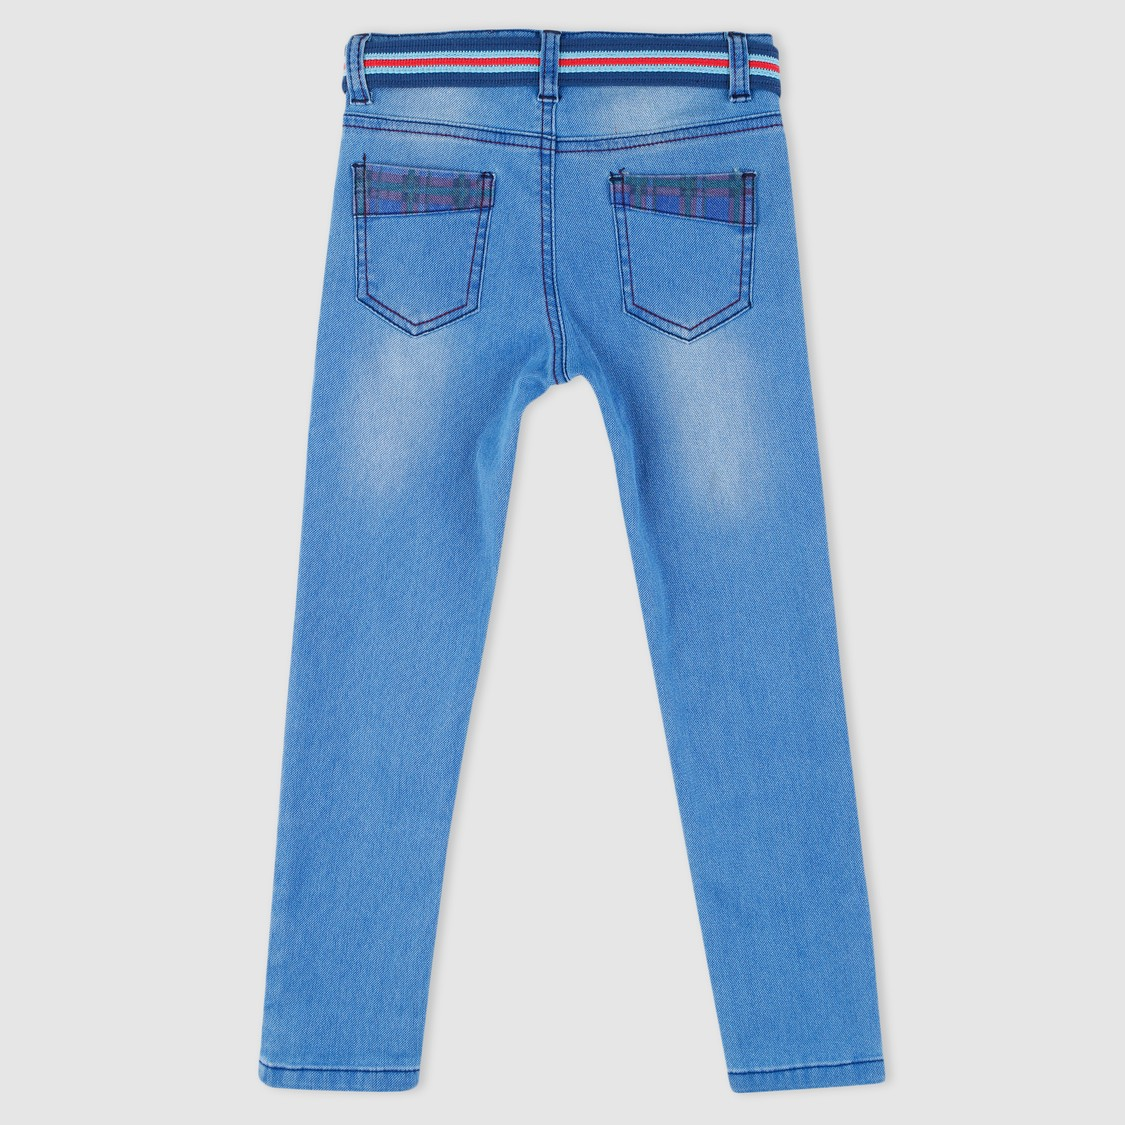 Full Length Jeans with Belt Detail